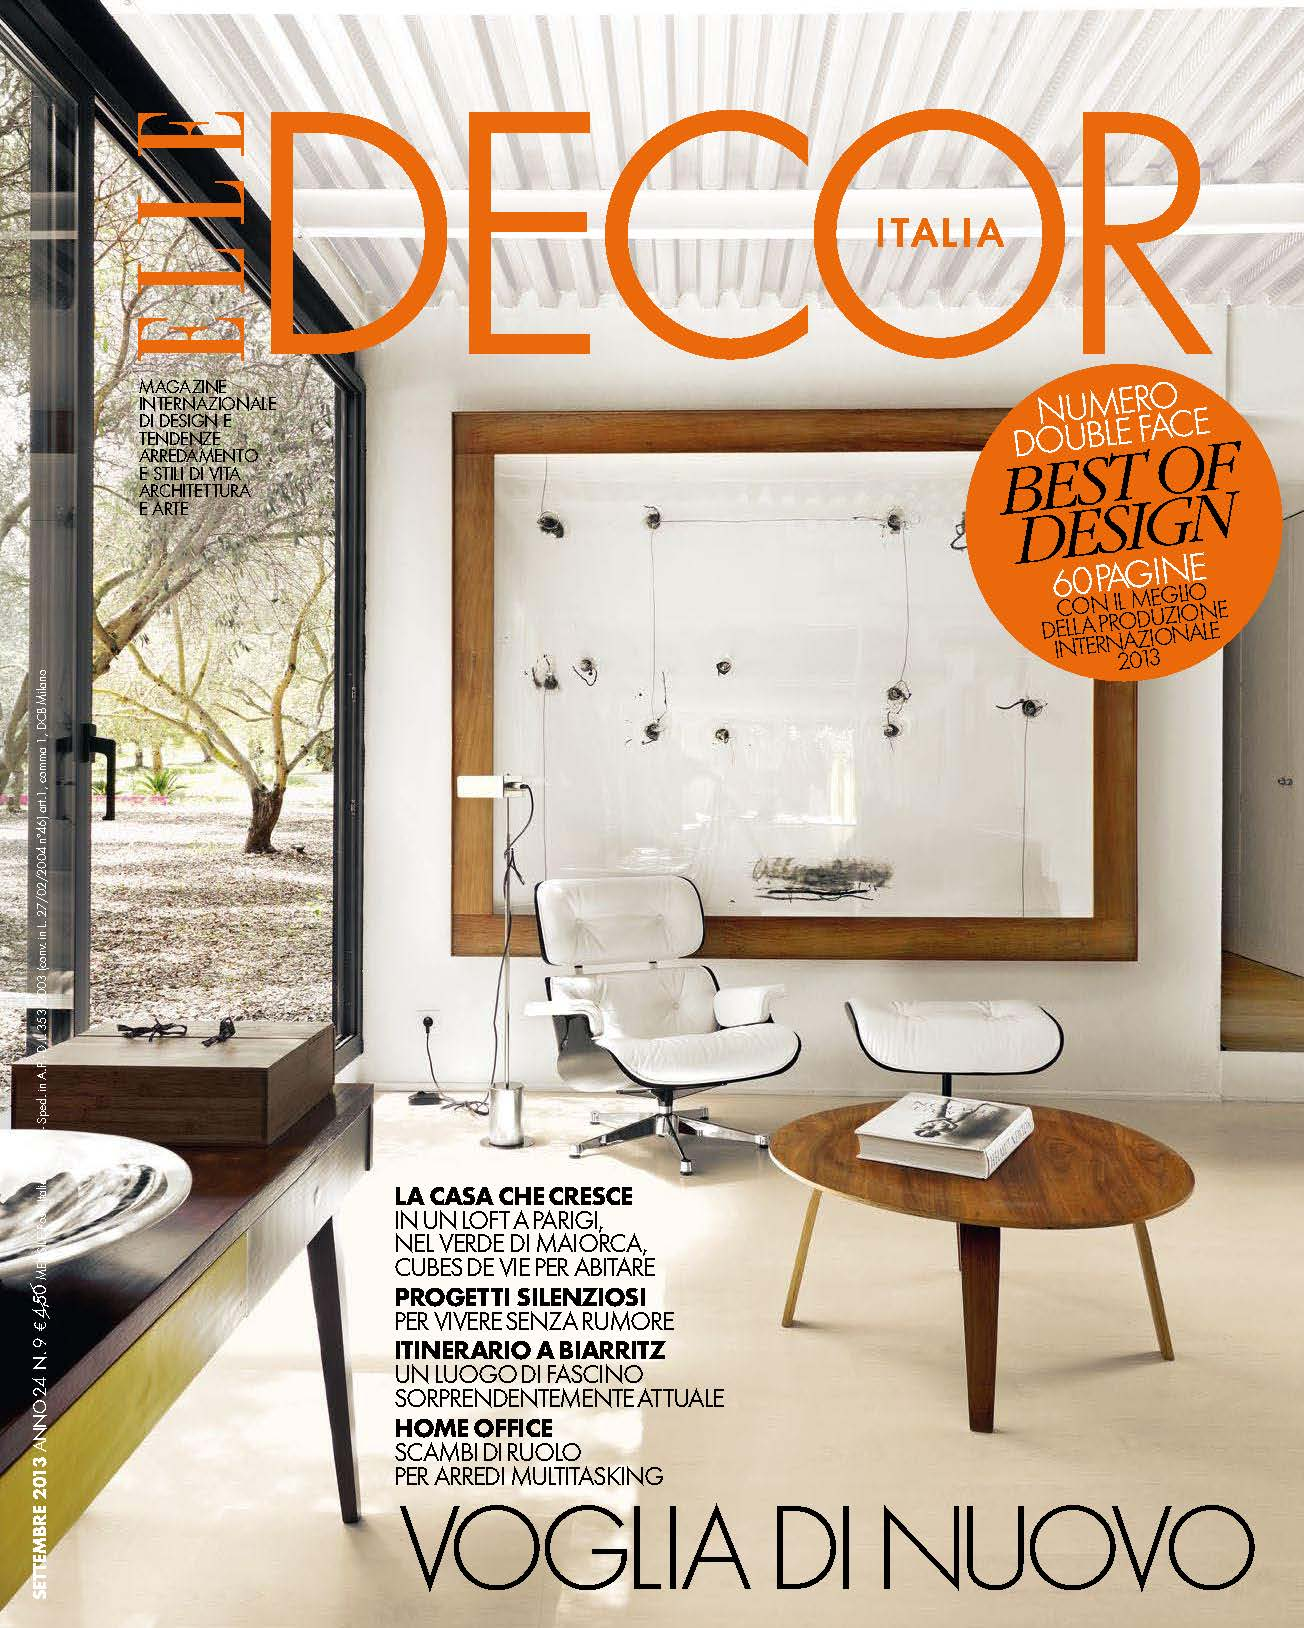 Elle_Decor_09_2013_Page_1